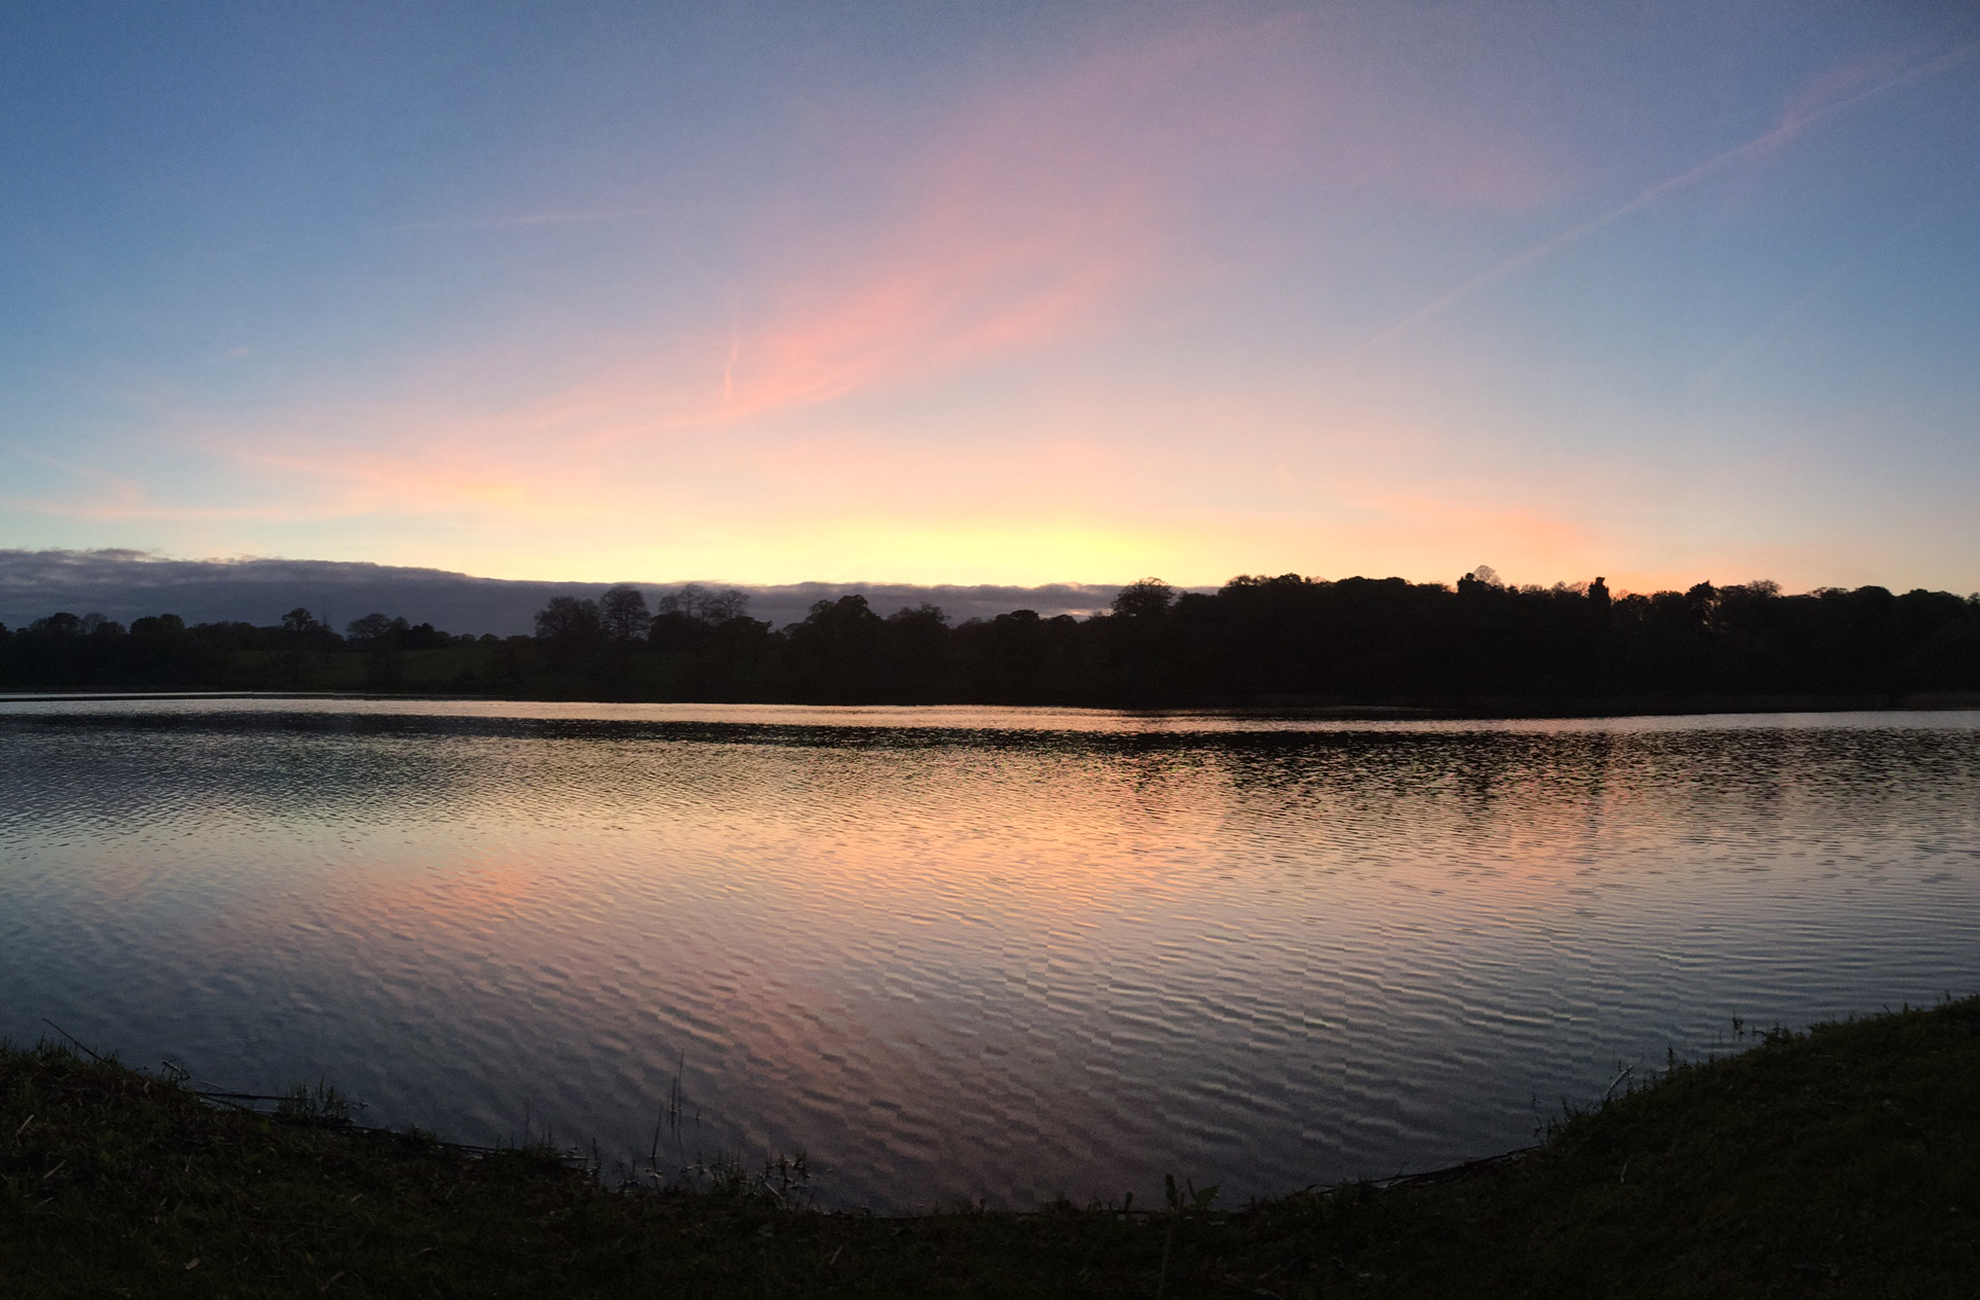 The sun sets over the lake at Combermere Abbey In Cheshire